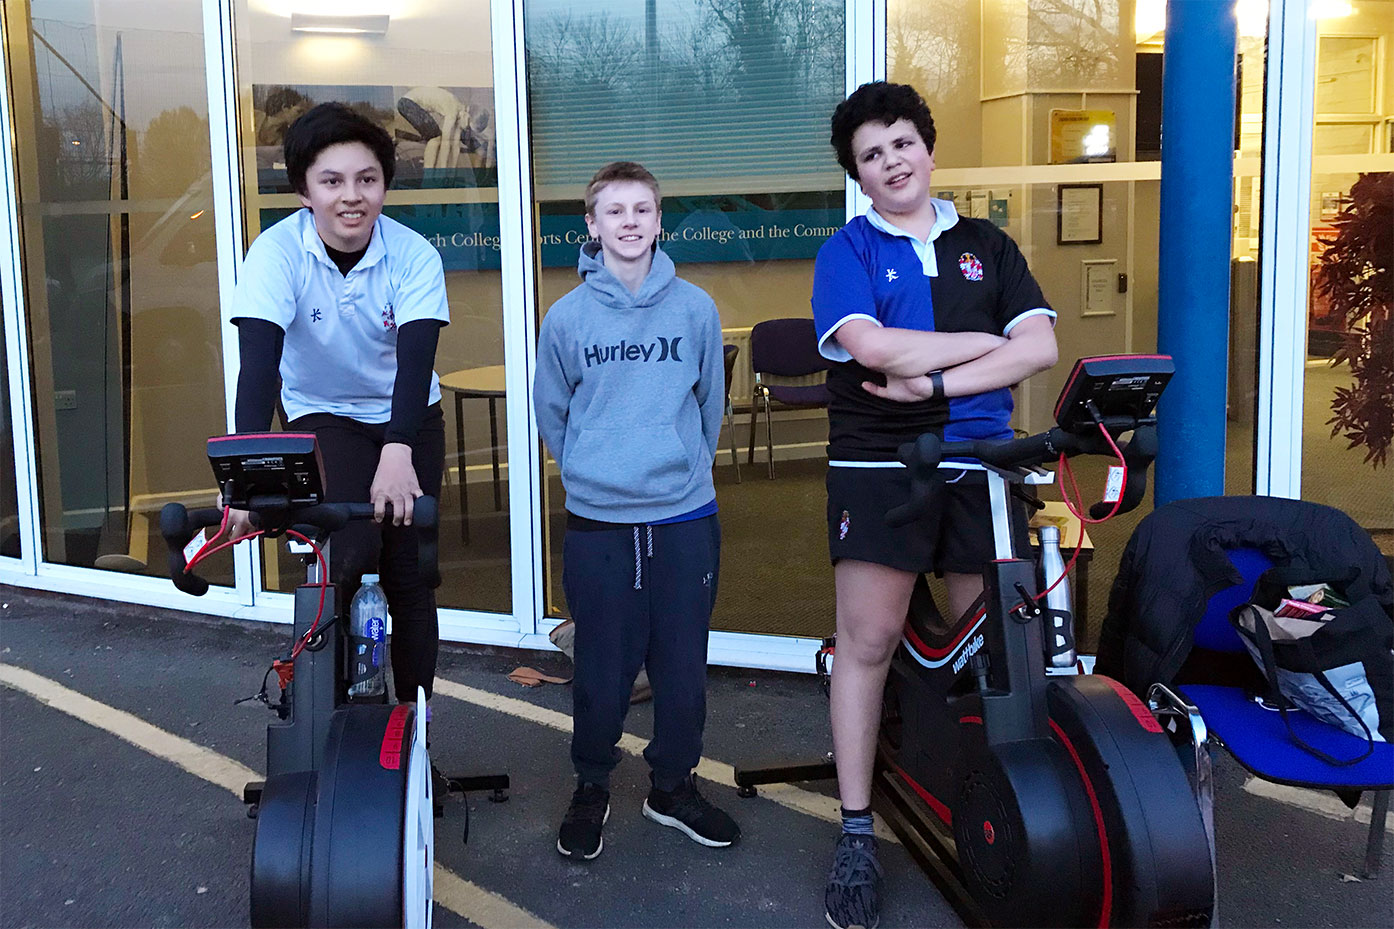 Dulwich College WOHAA team cycle through to the semi-finals